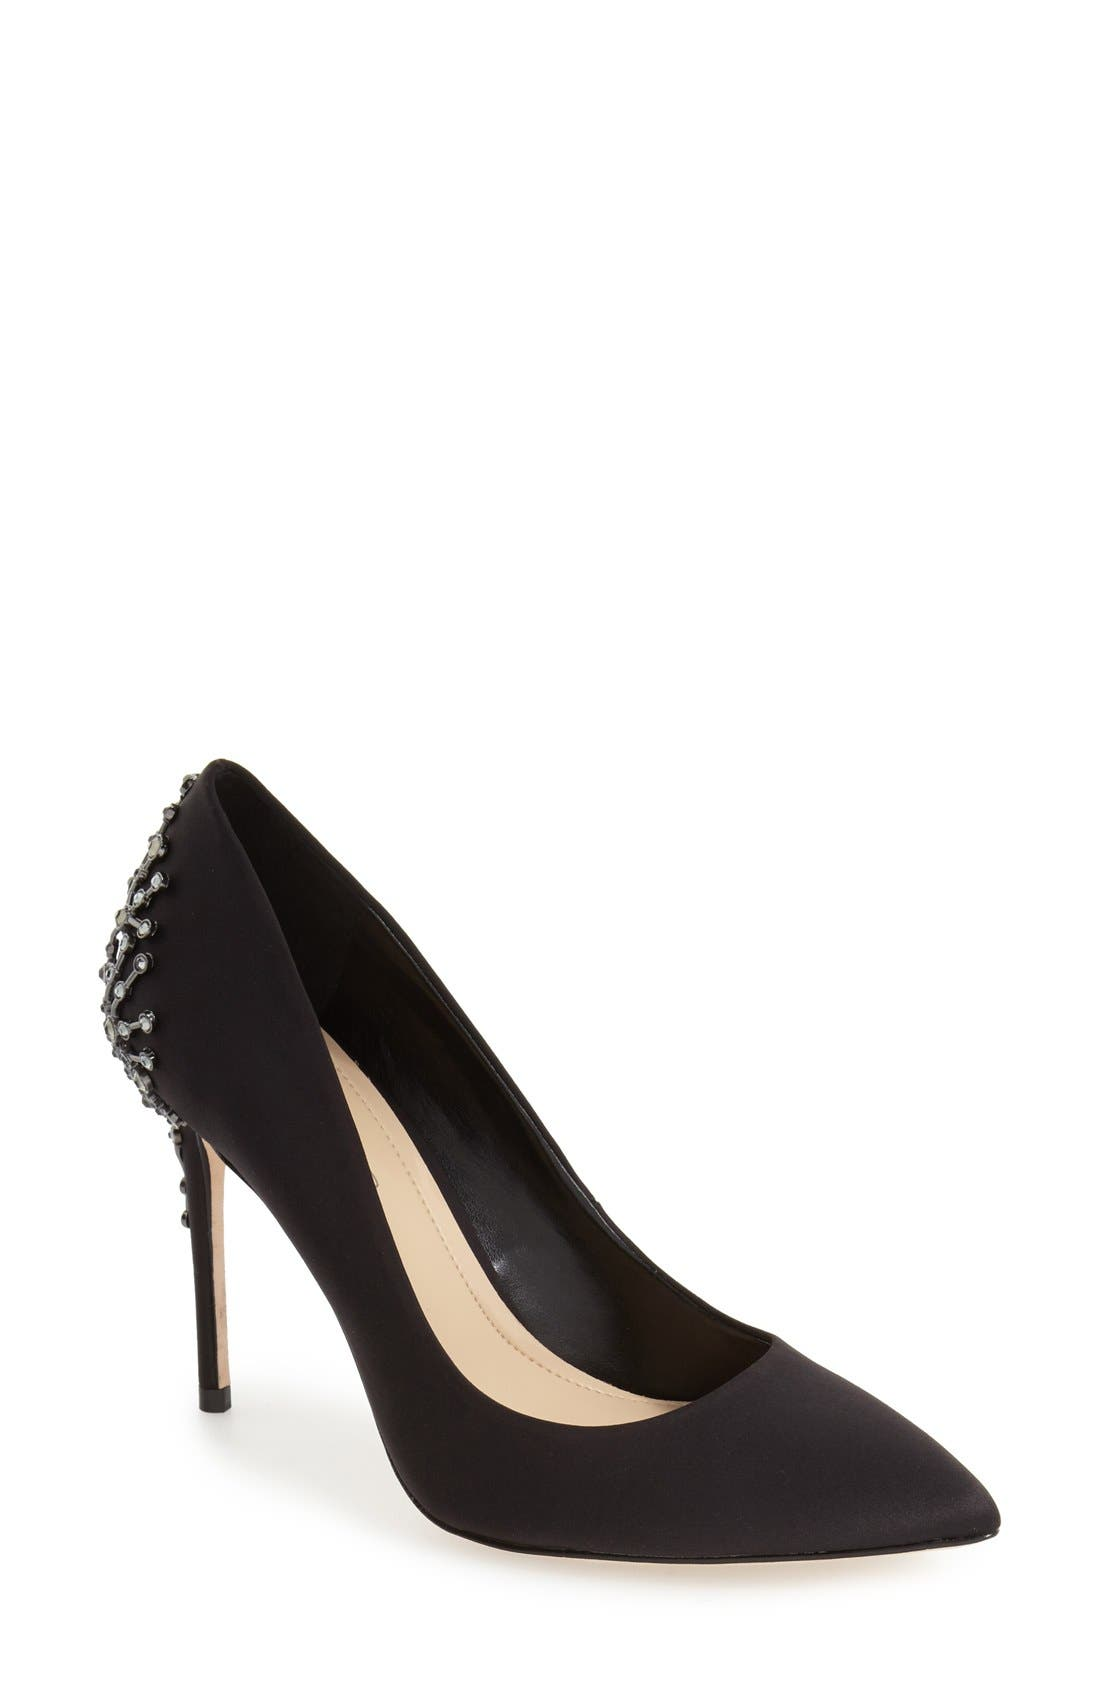 Alternate Image 1 Selected - Imagine by Vince Camuto Crystal Embellished Pump (Women)